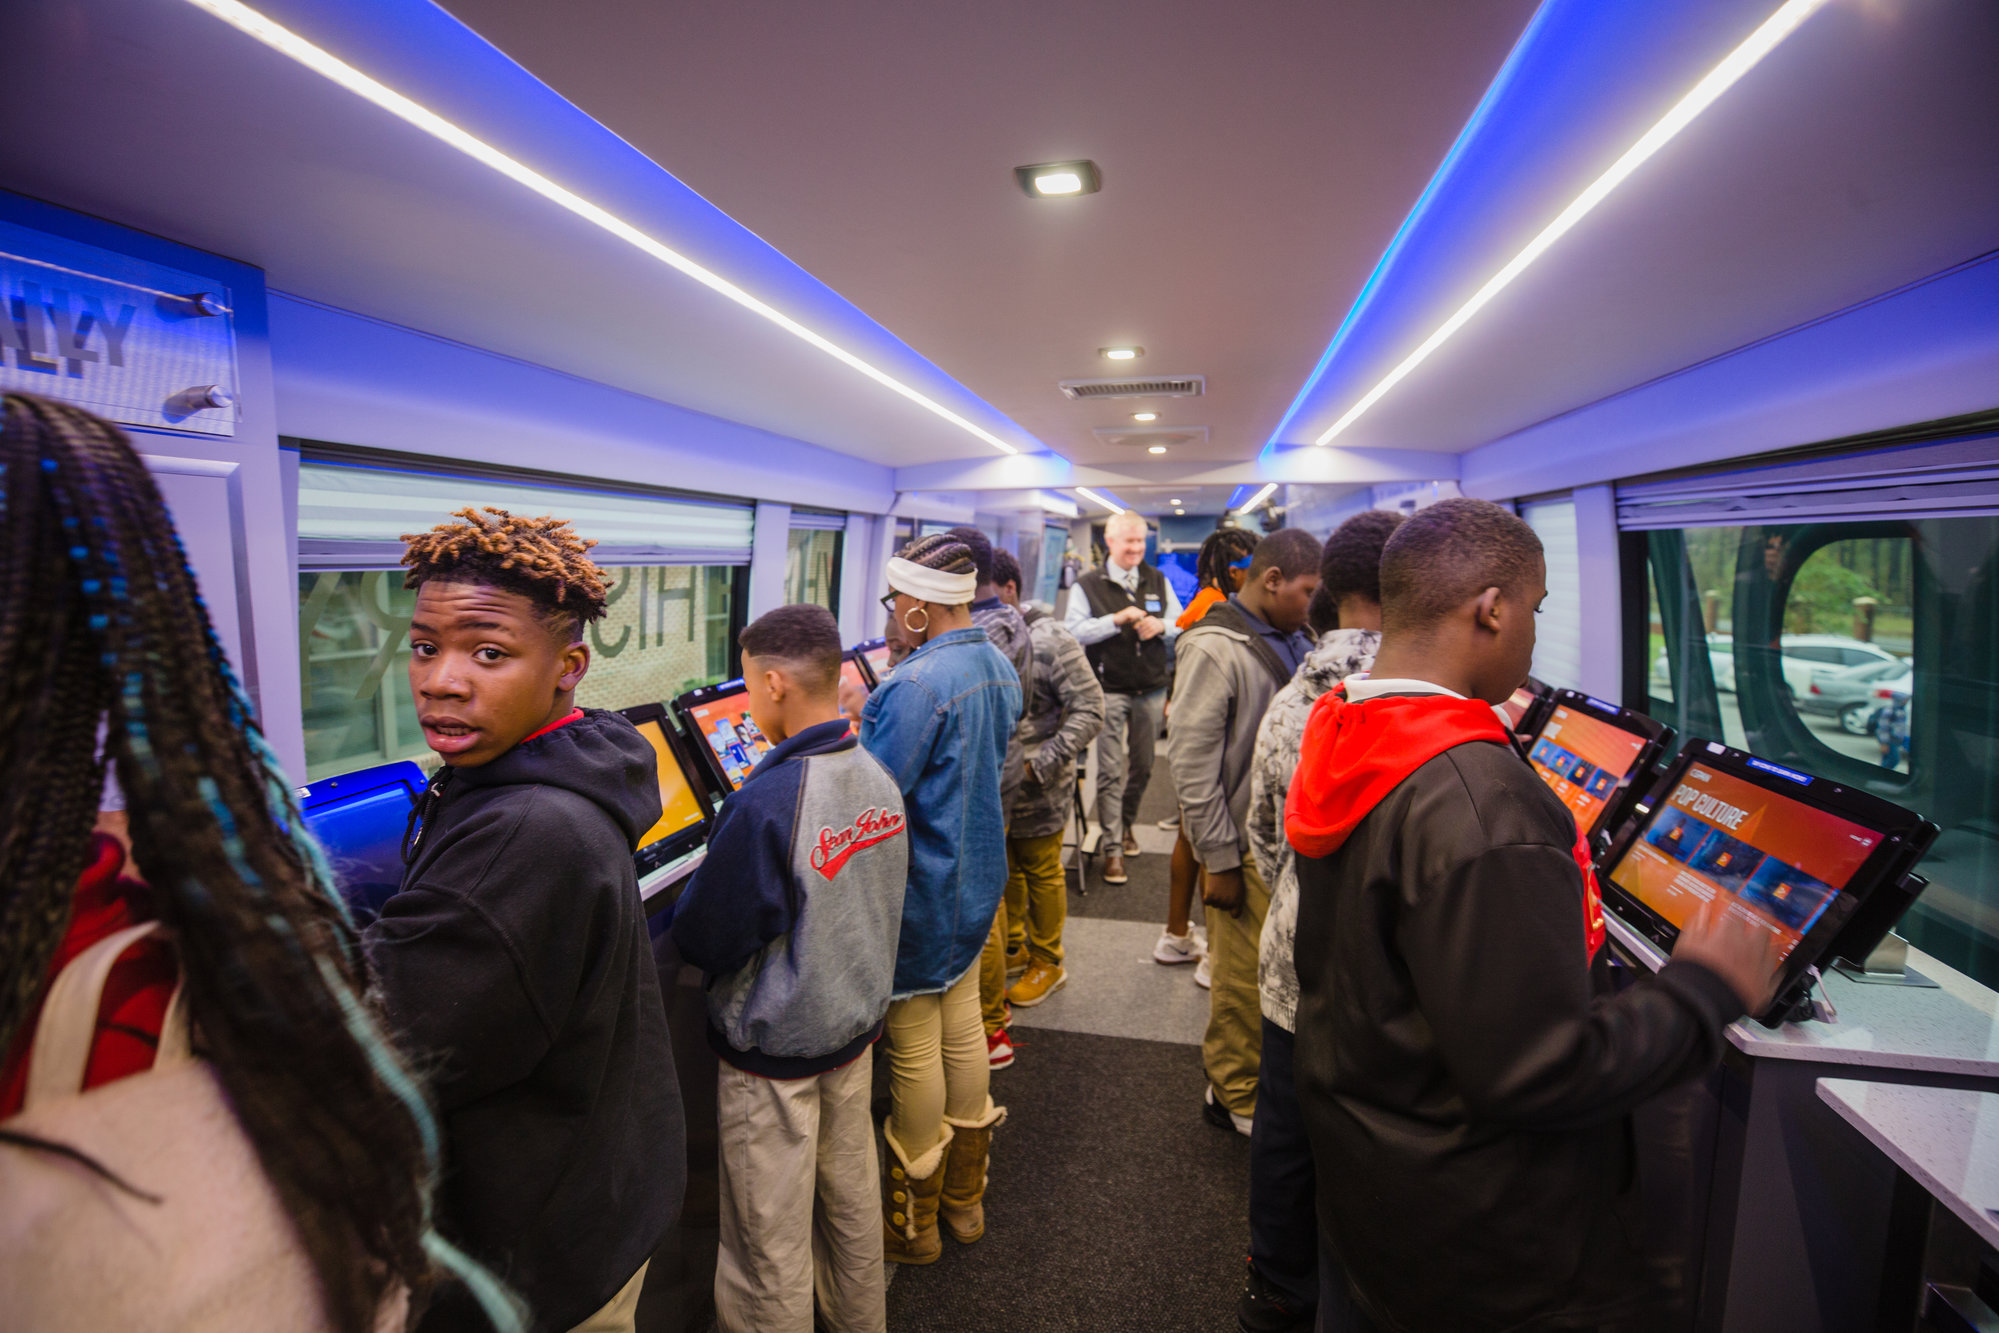 Eighth-graders from R.E. Davis College Preparatory Academy check out touch screens filled with quizzes, videos and other educational information on board the C-SPAN bus on Tuesday. The bus is visiting schools across the country.